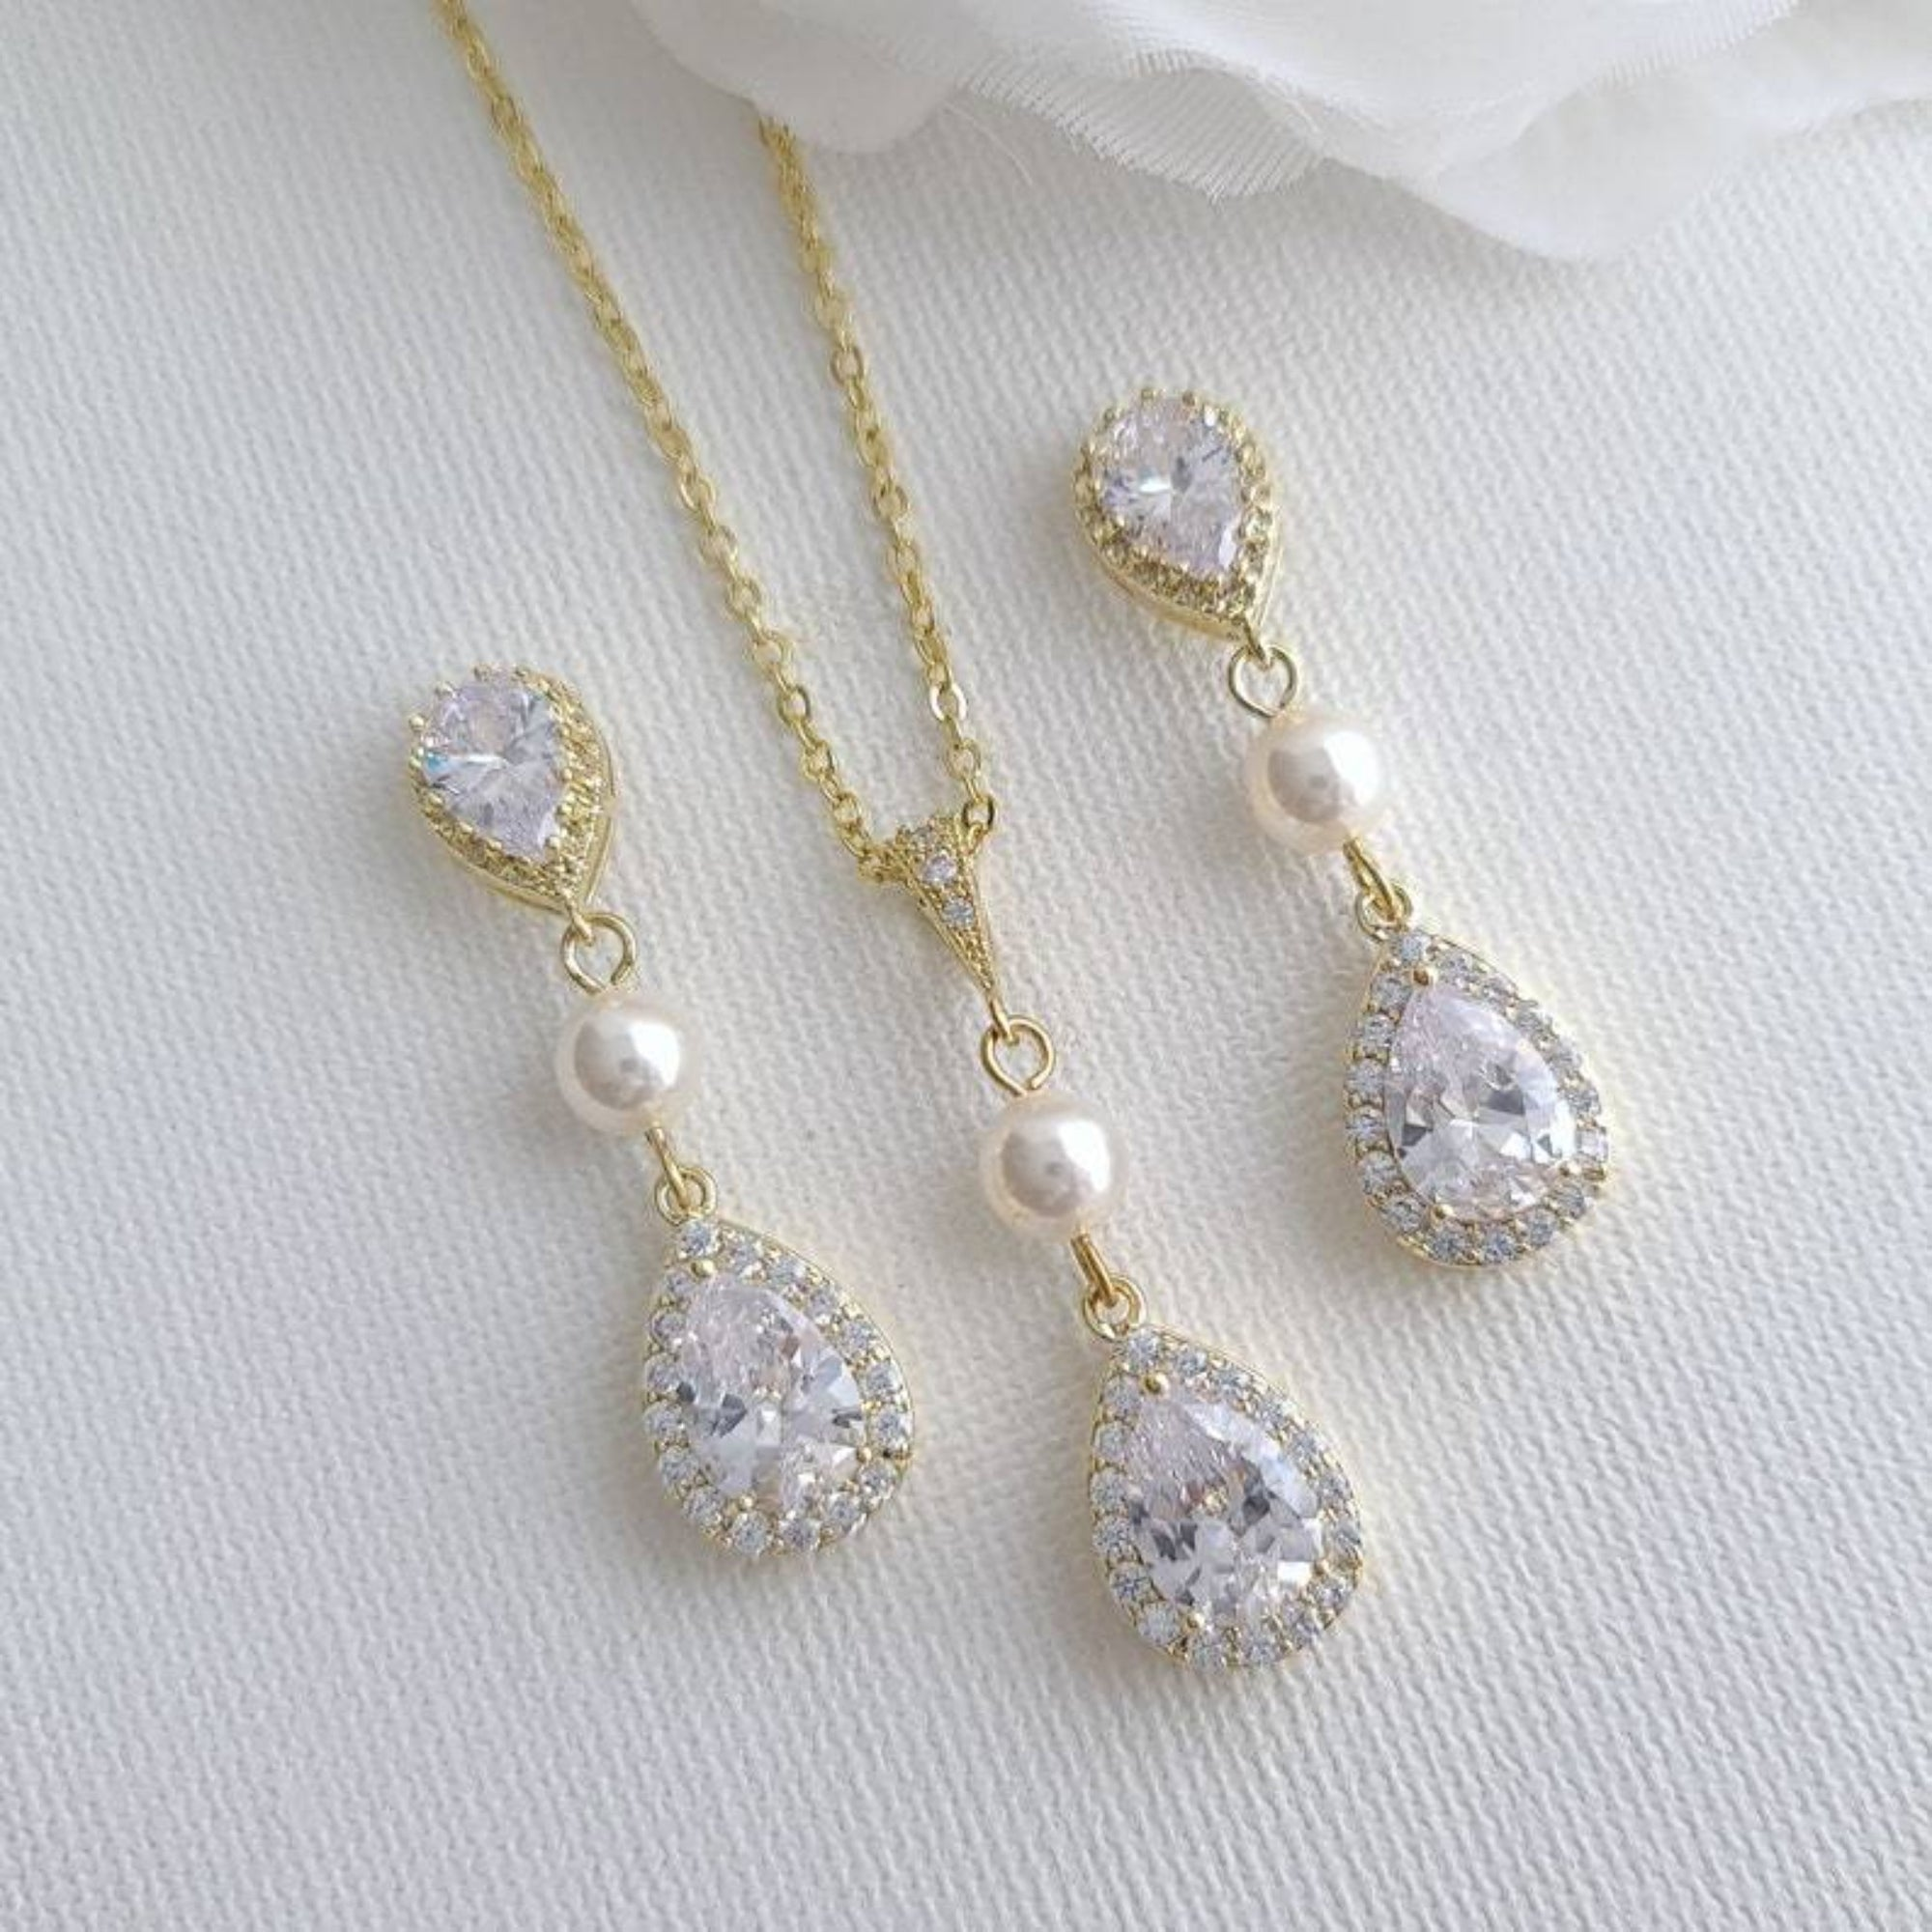 Gold Wedding Jewelry Set with Earrings & Necklace- Emma